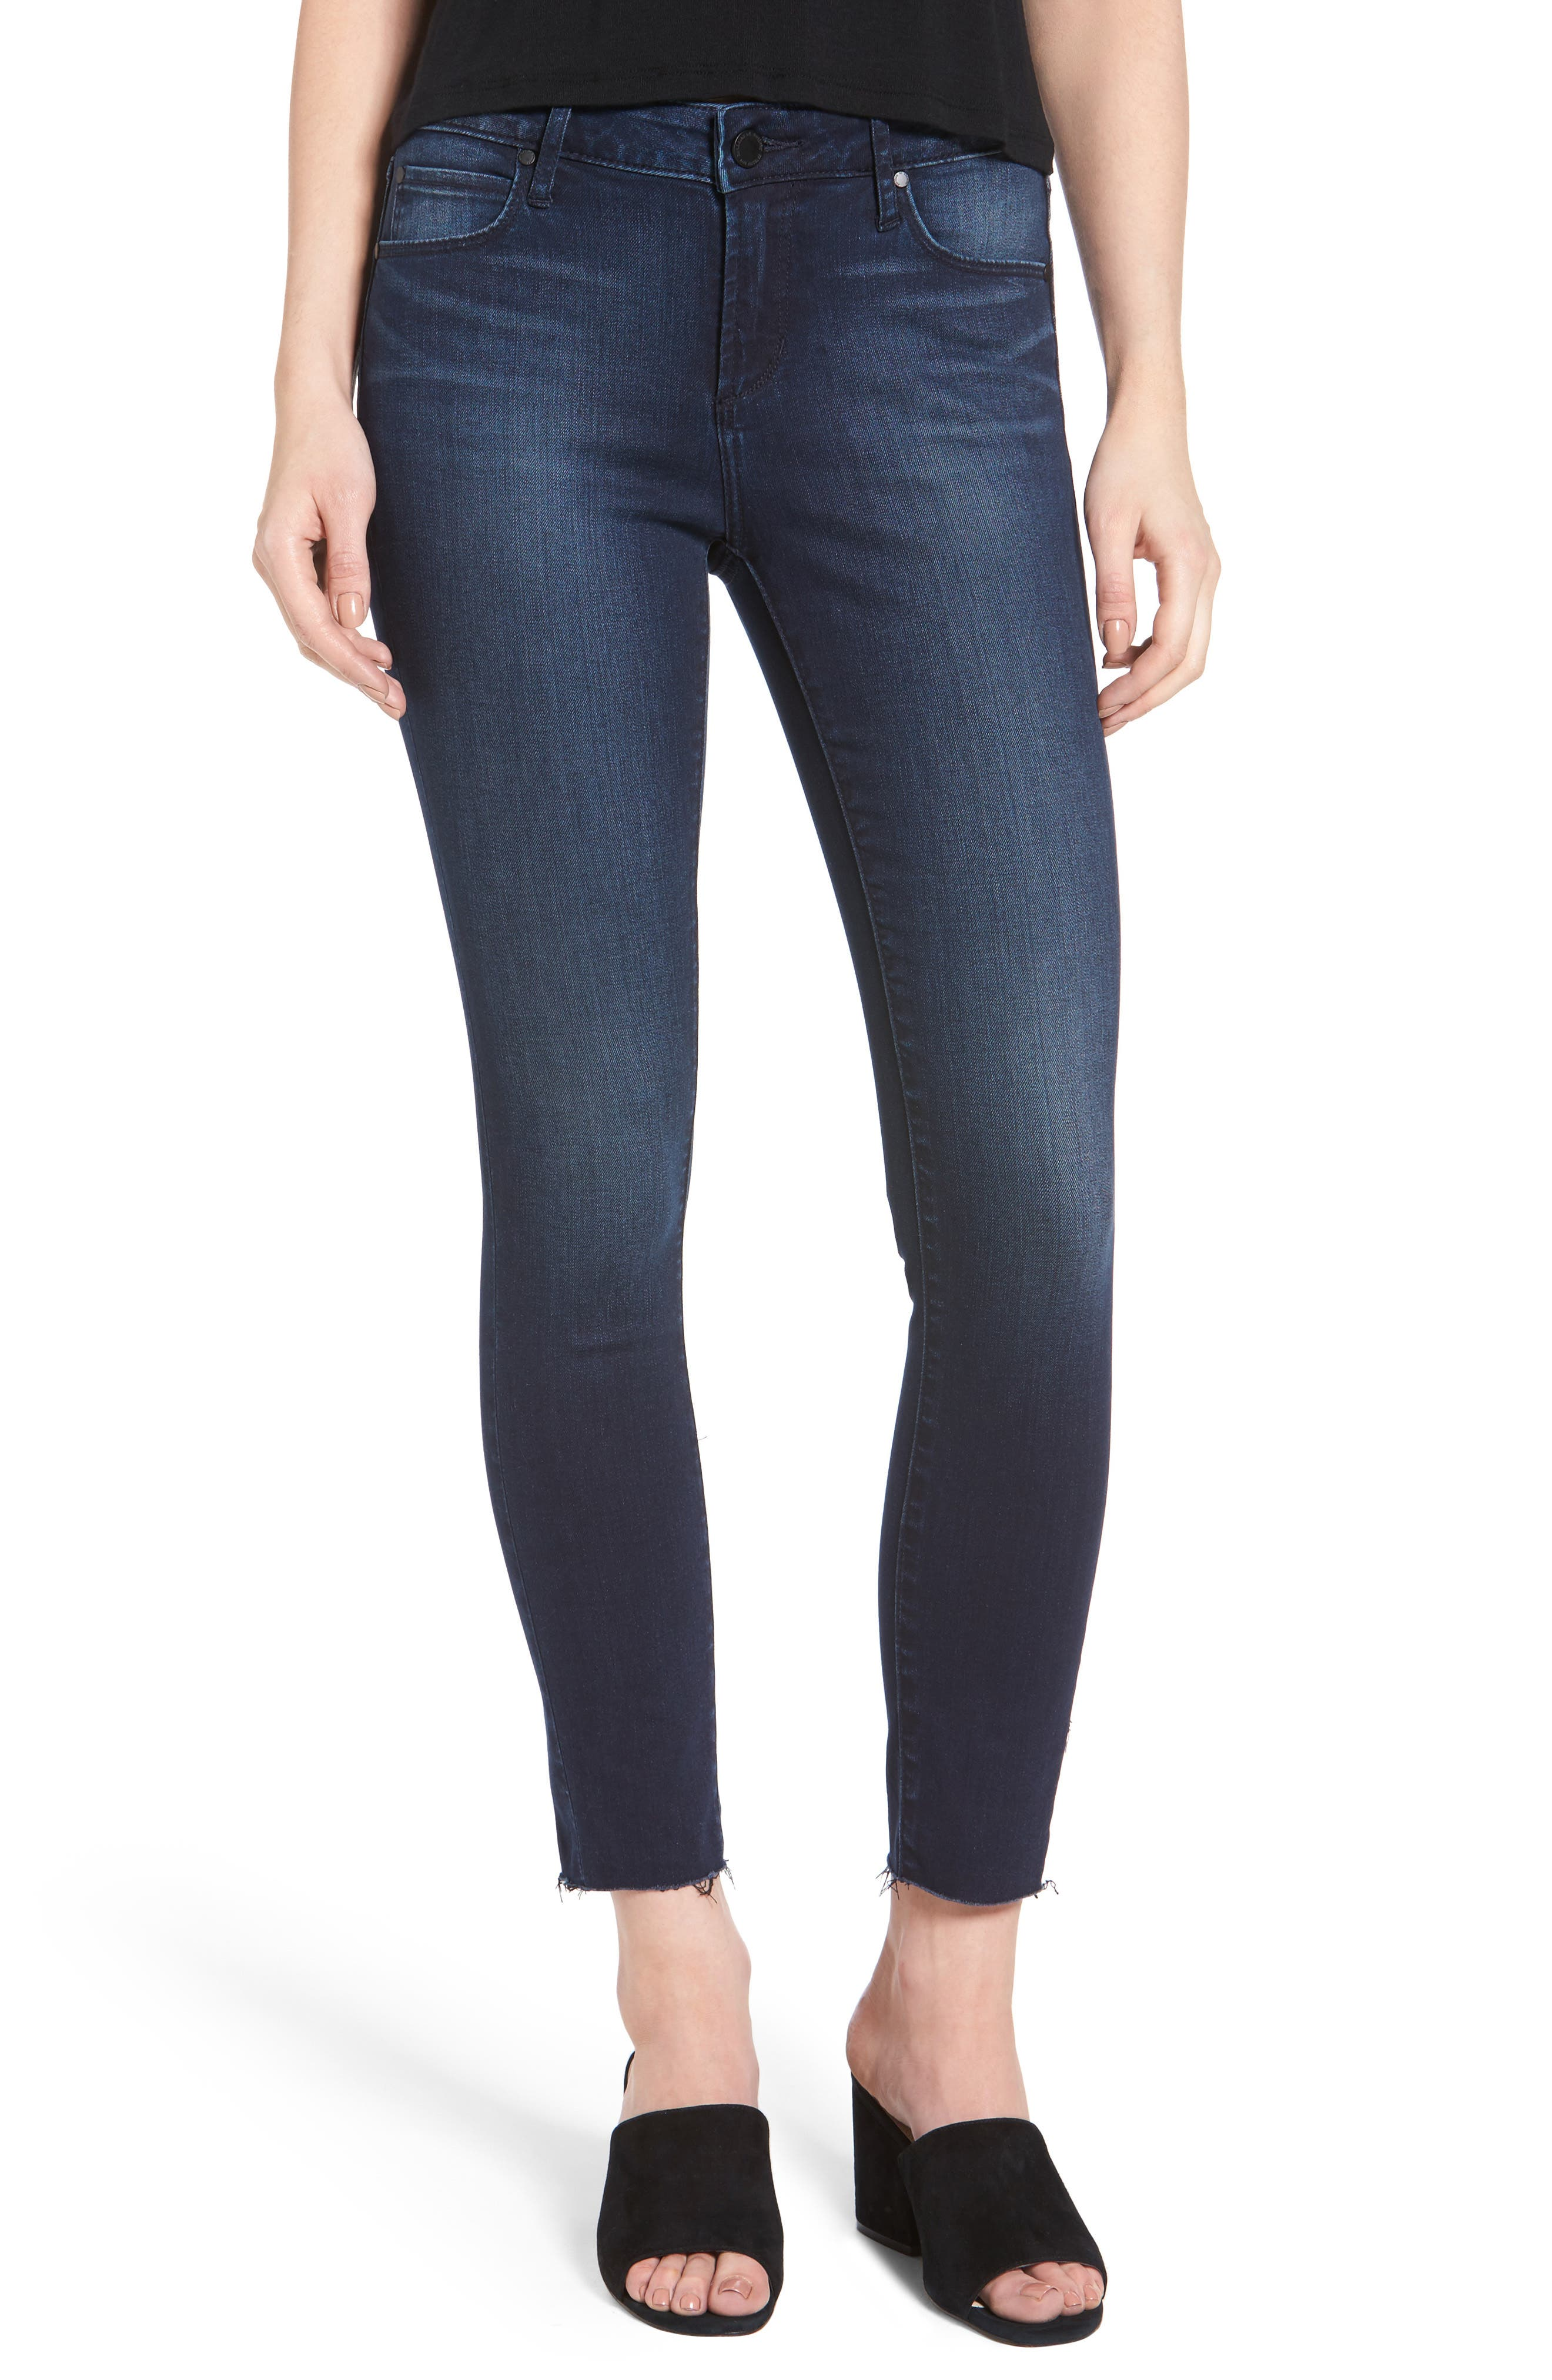 ARTICLES OF SOCIETY,                             Carly Crop Skinny Jeans,                             Main thumbnail 1, color,                             499